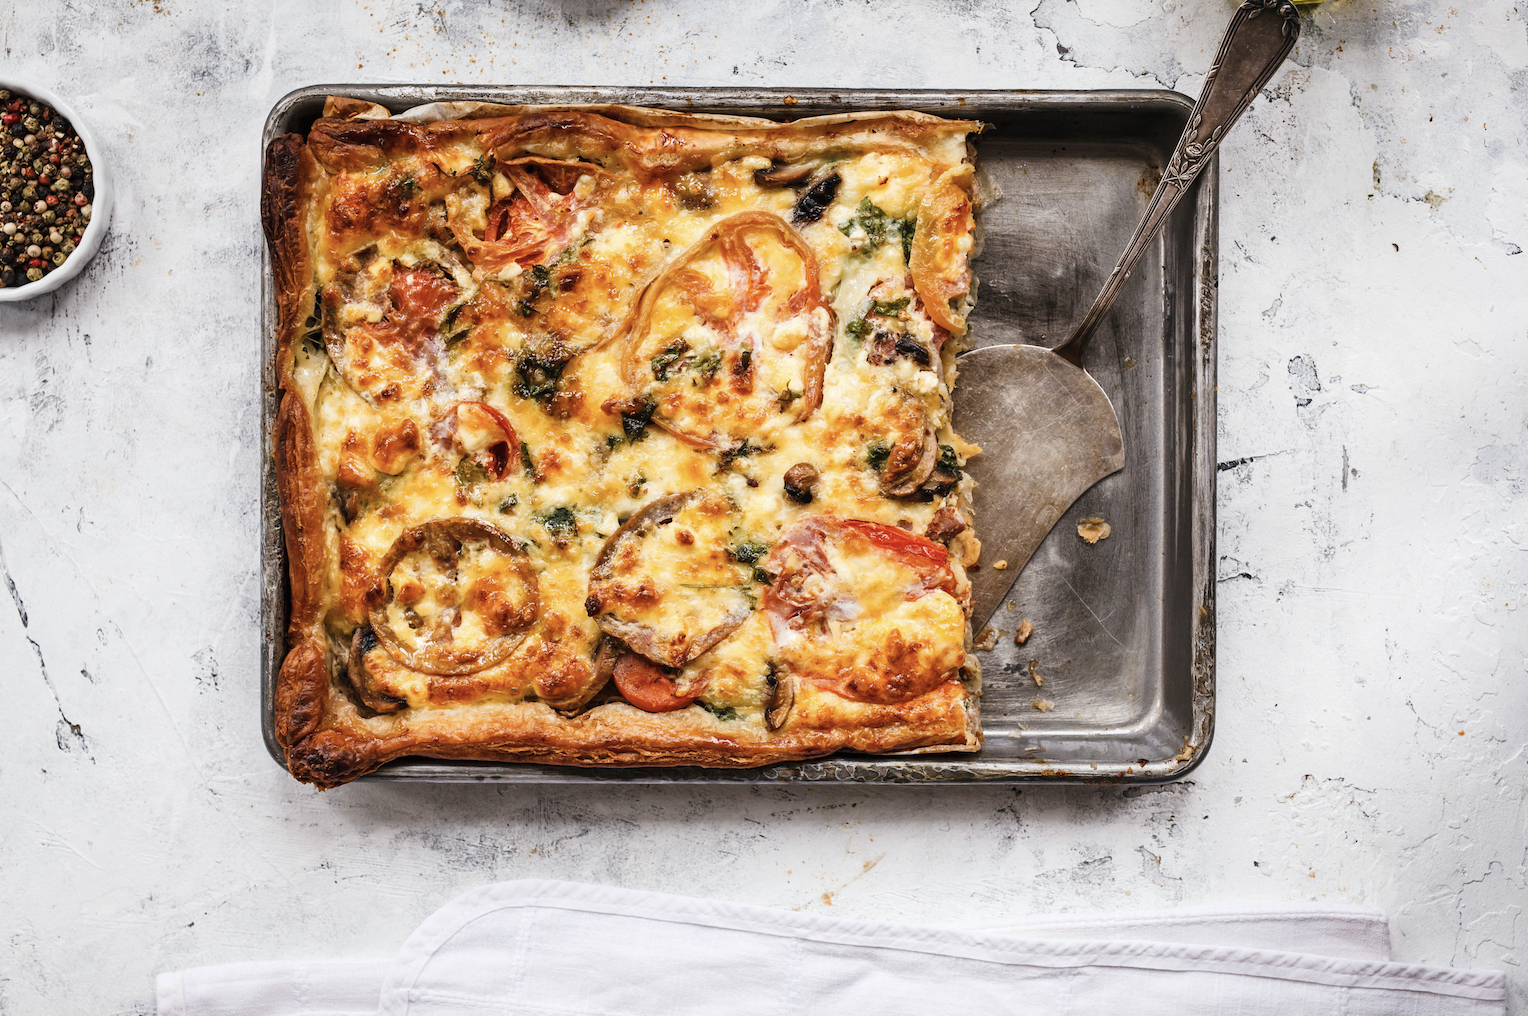 Smoked Haddock and Tomato Quiche